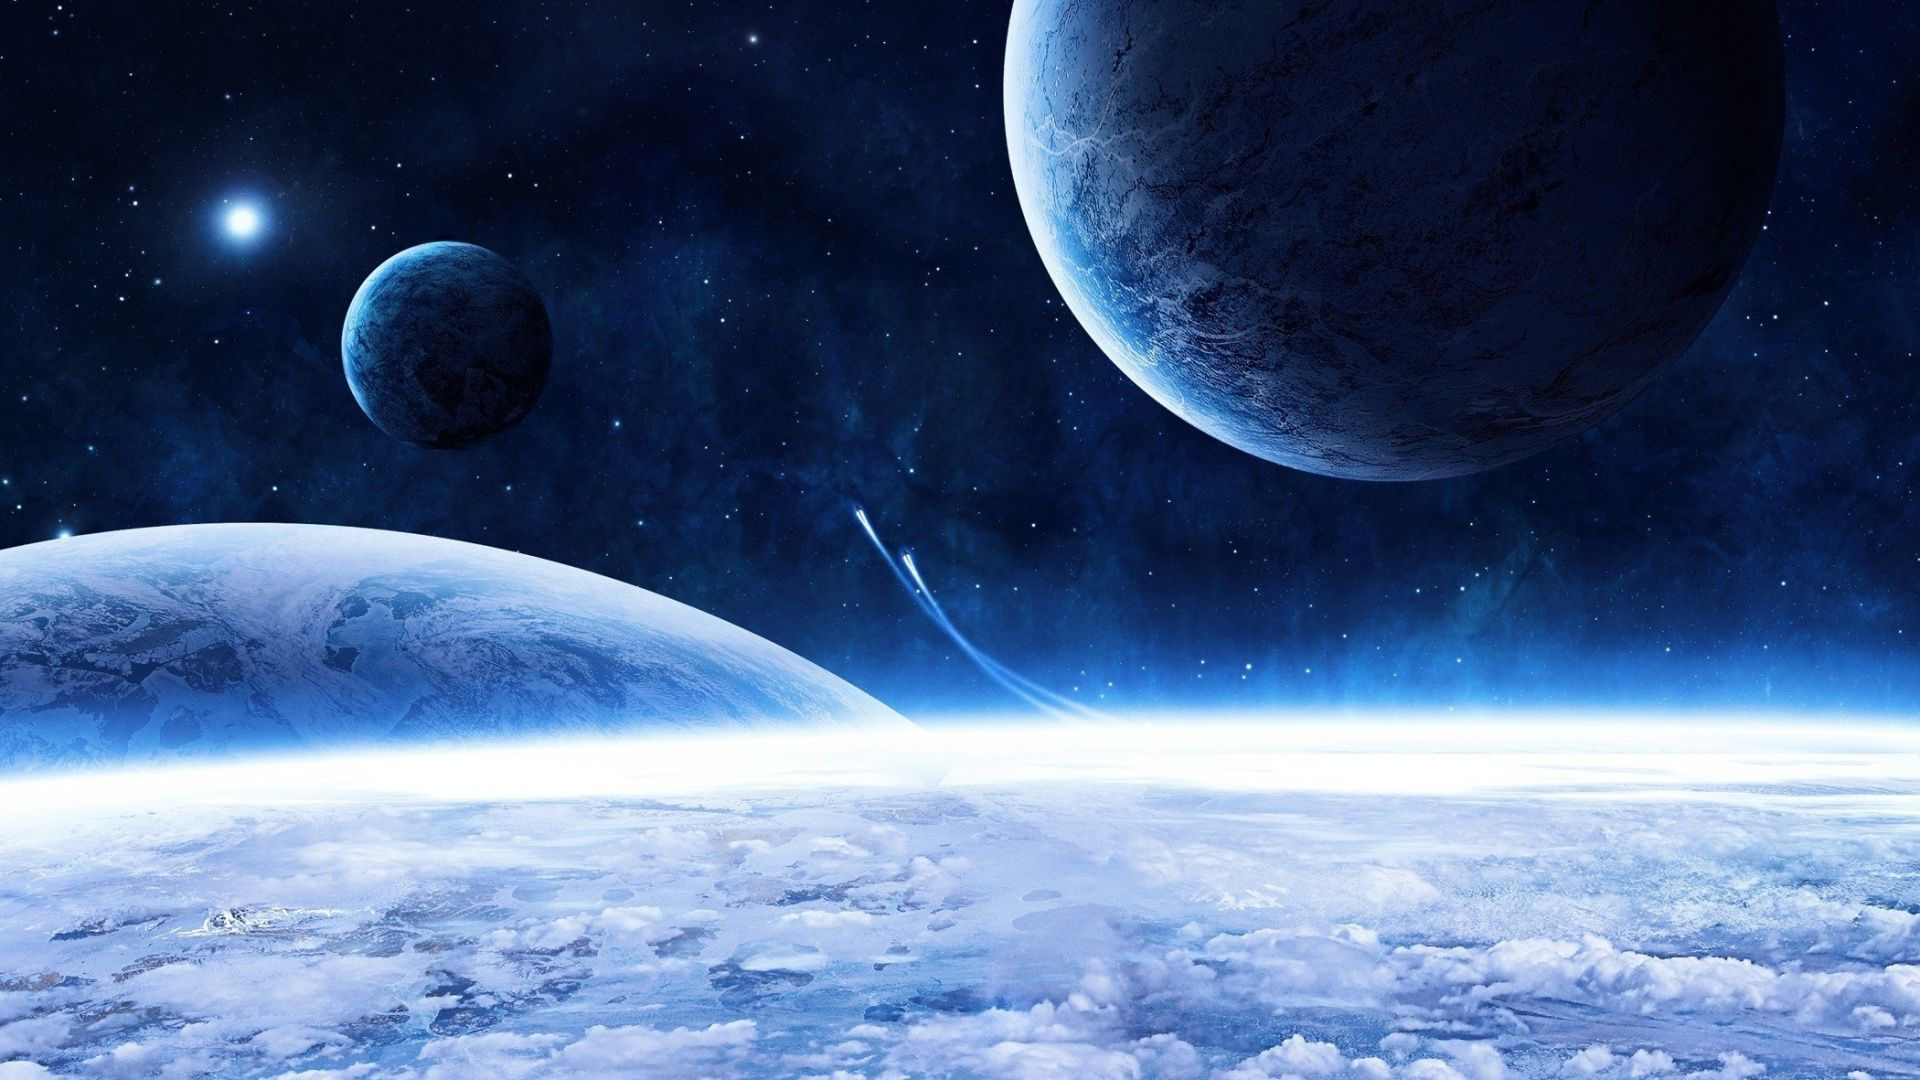 High Resolution Space Image good background